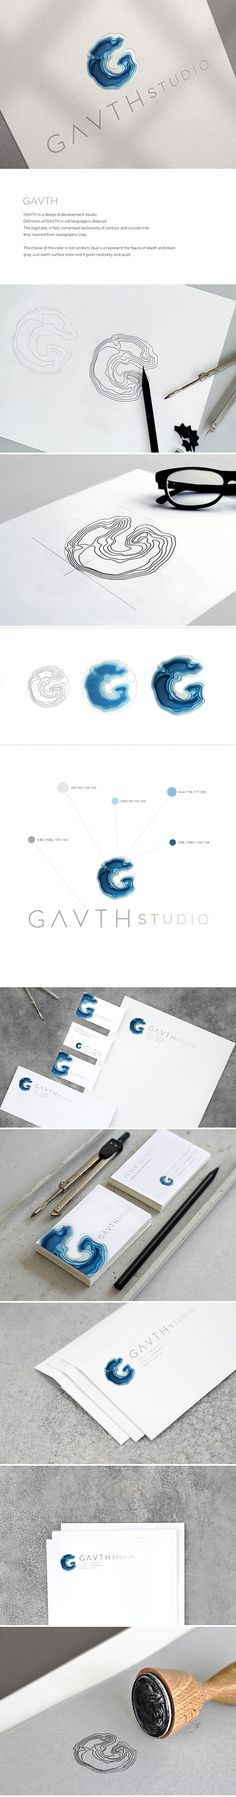 Gavth Studio Logo & Visual Identity on Behance